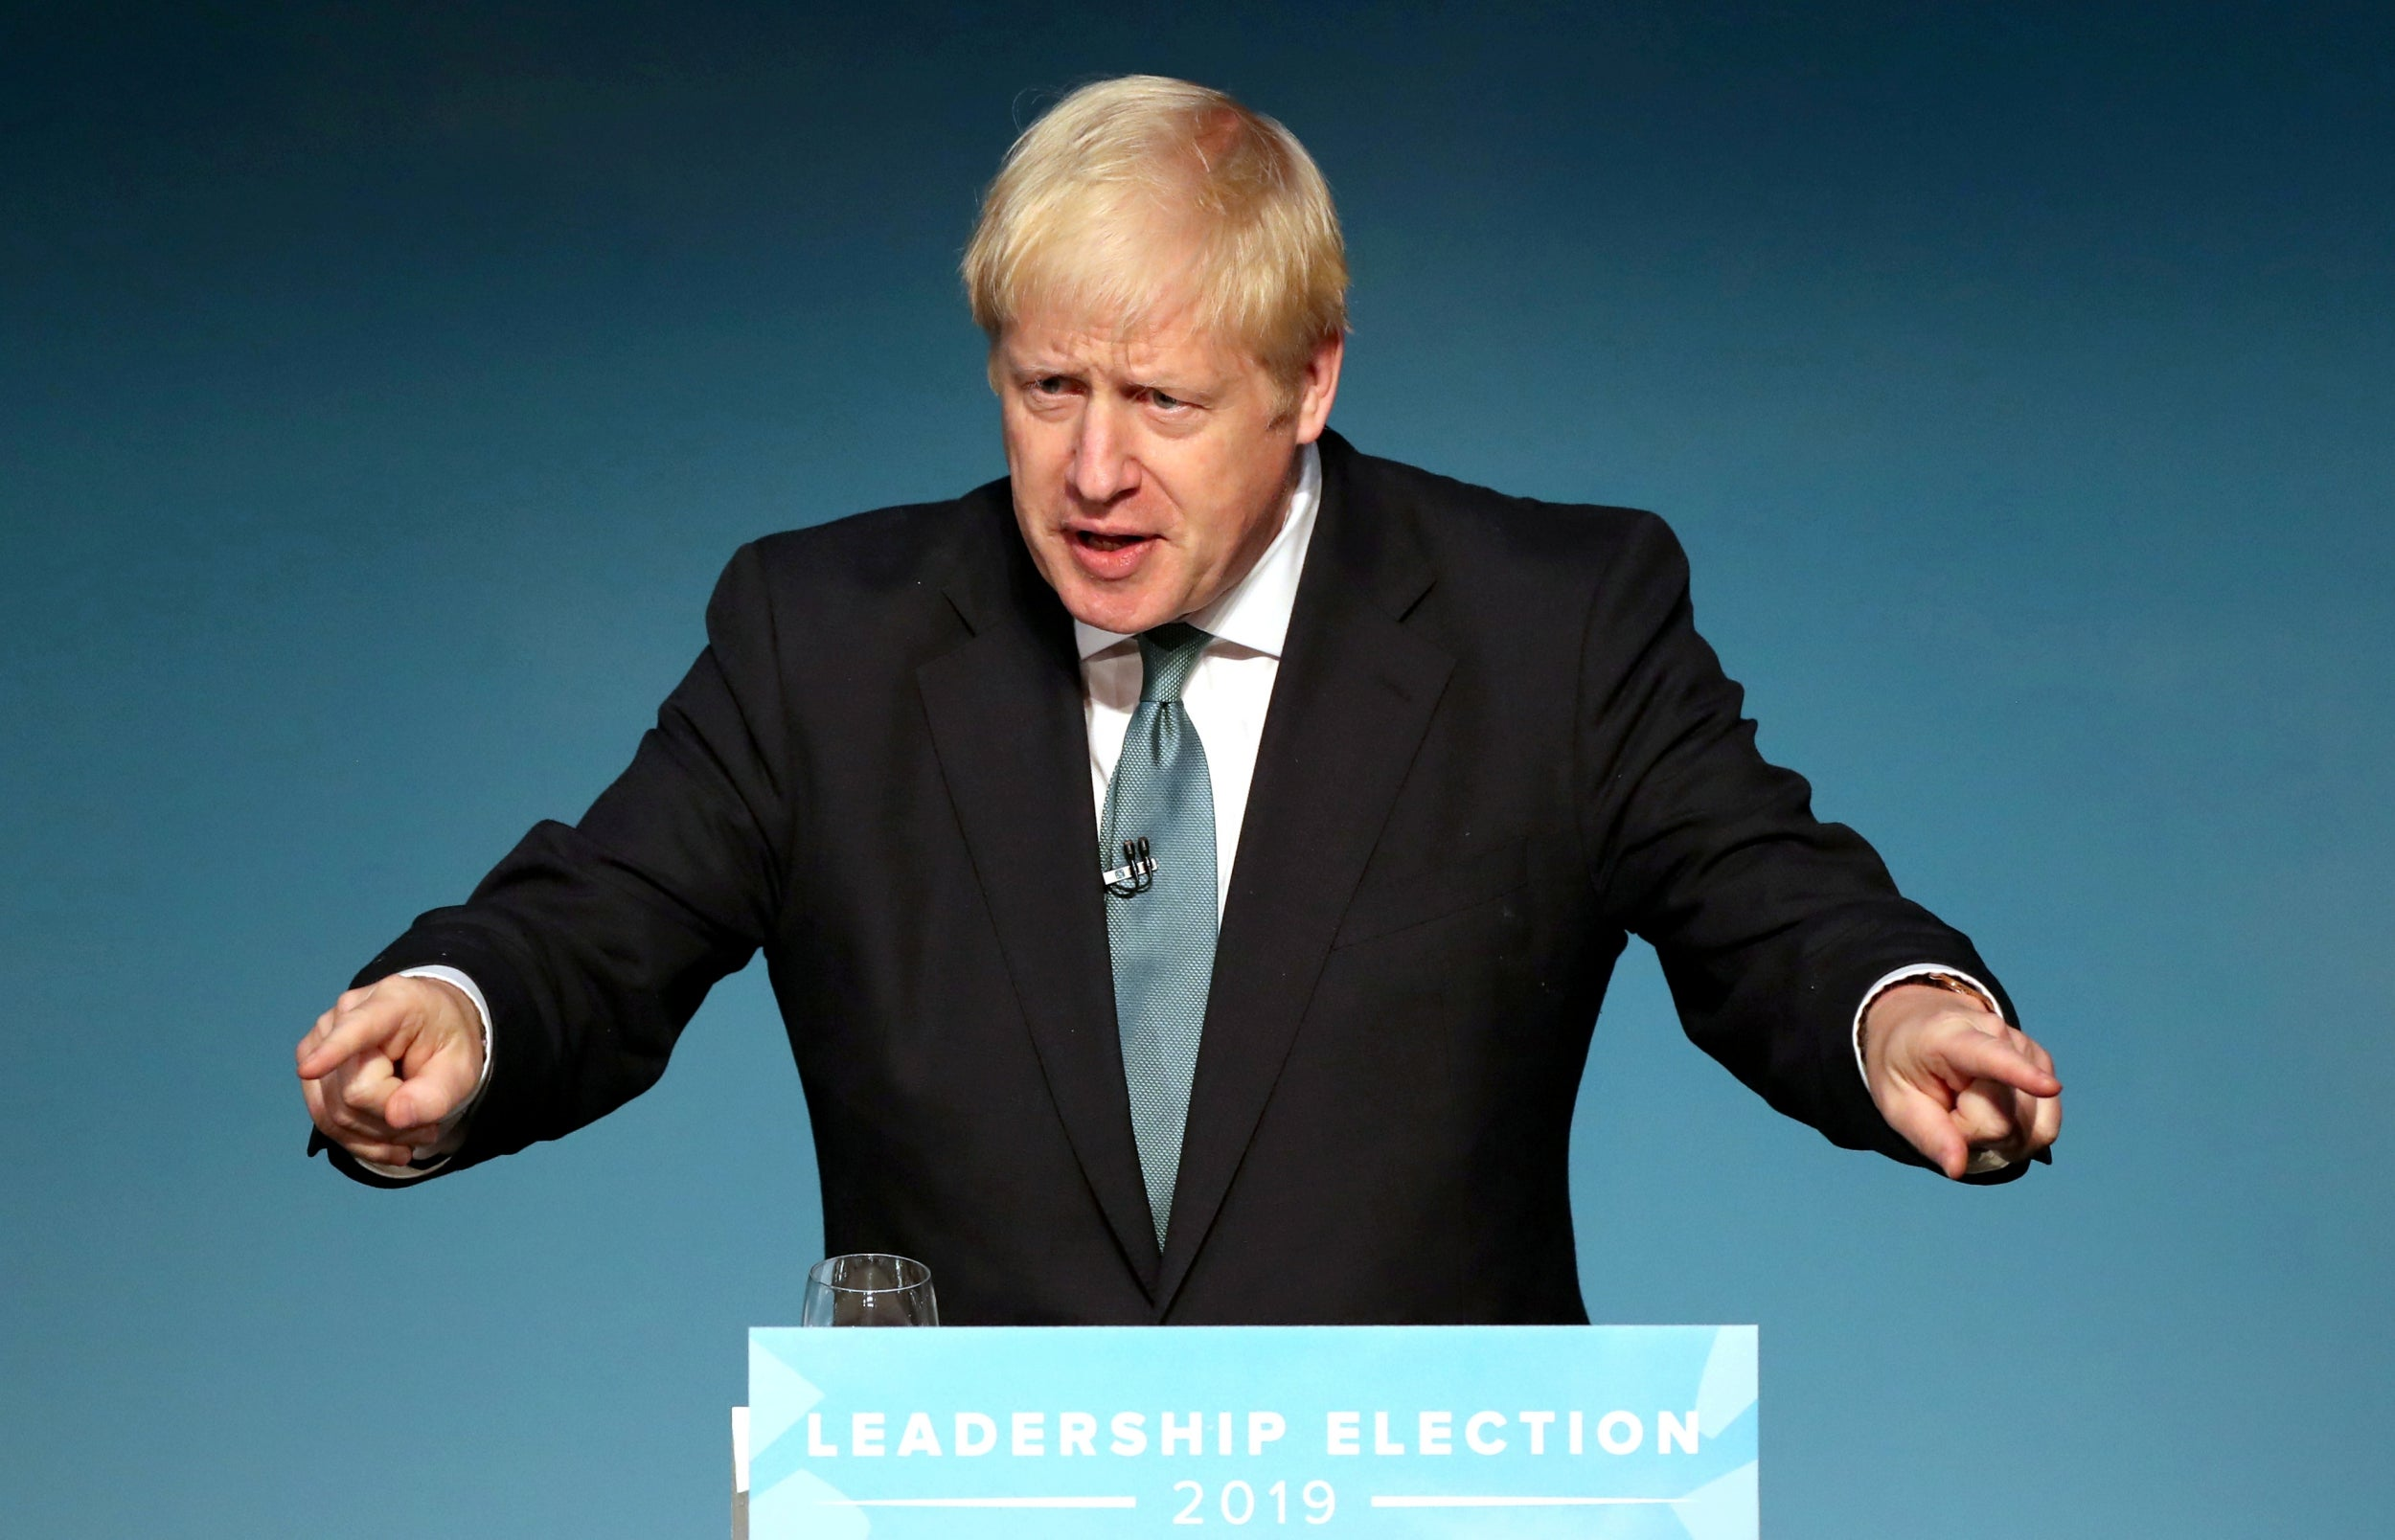 Boris Johnson voting record: How has new prime minister voted on fox hunting, Iraq and climate change?